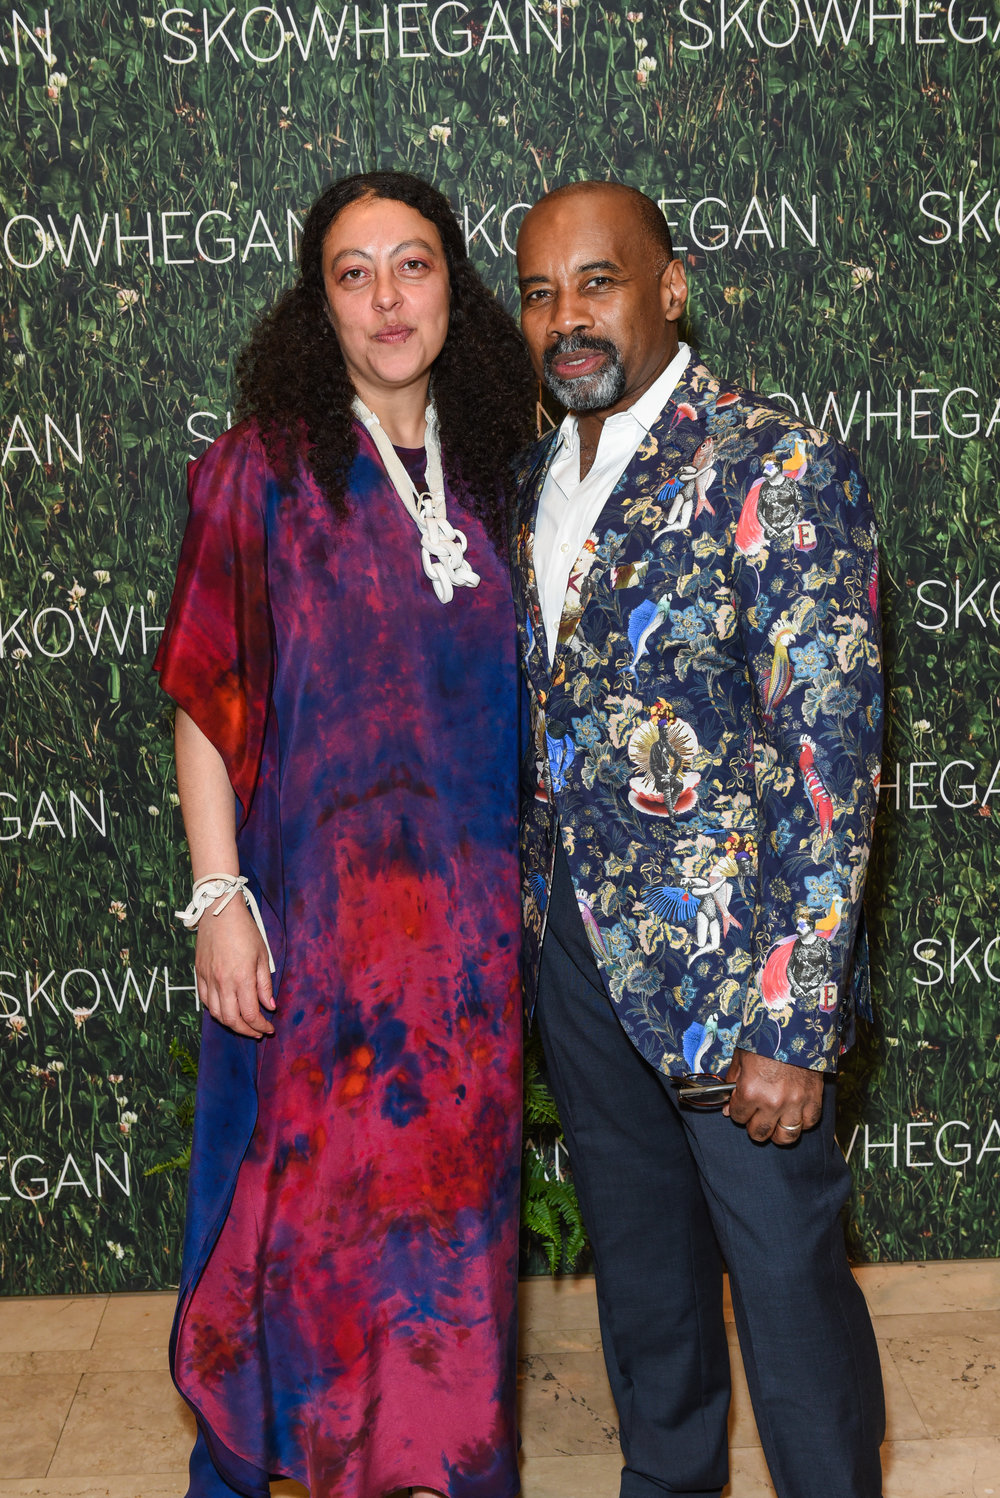 Sarah Workneh, Paul Kirnon==